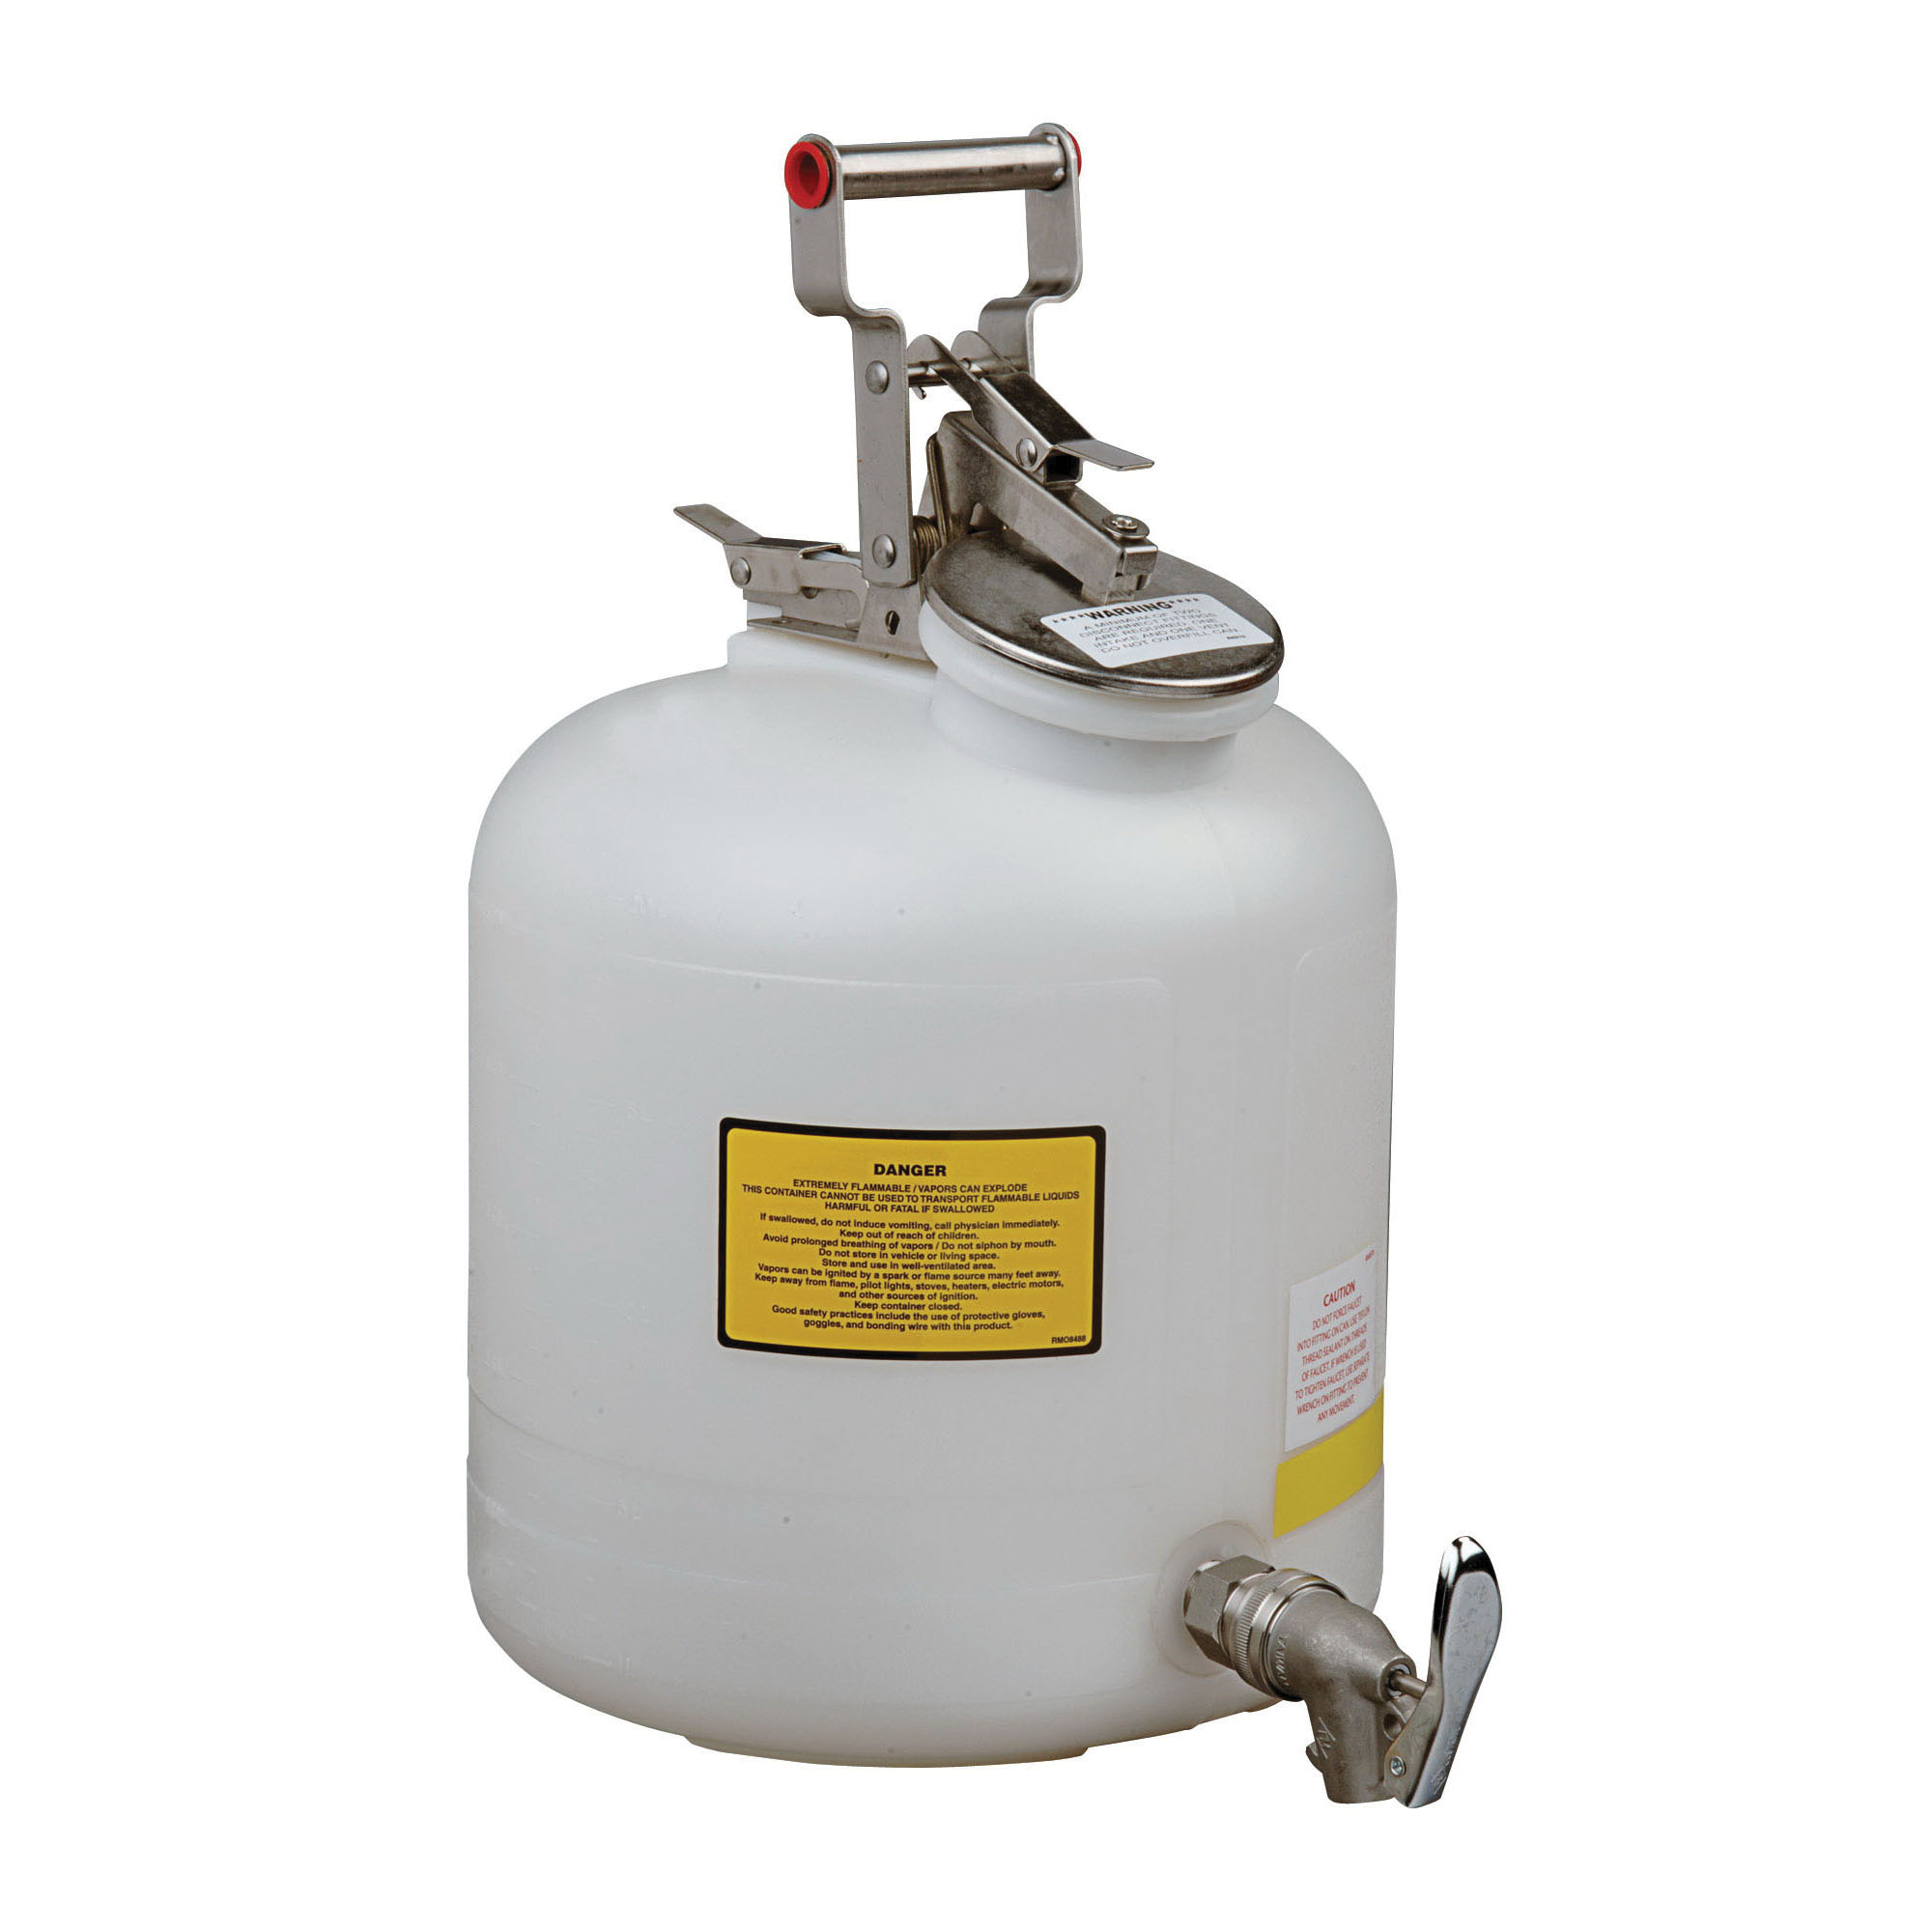 Justrite® 12772 Liquid Disposal Safety Can With Stainless Steel Hardware and Faucet, 5 gal Capacity, 12 in Dia, 20 in H, Polyethylene, White, FM Approved, OSHA Approved, NFPA 30